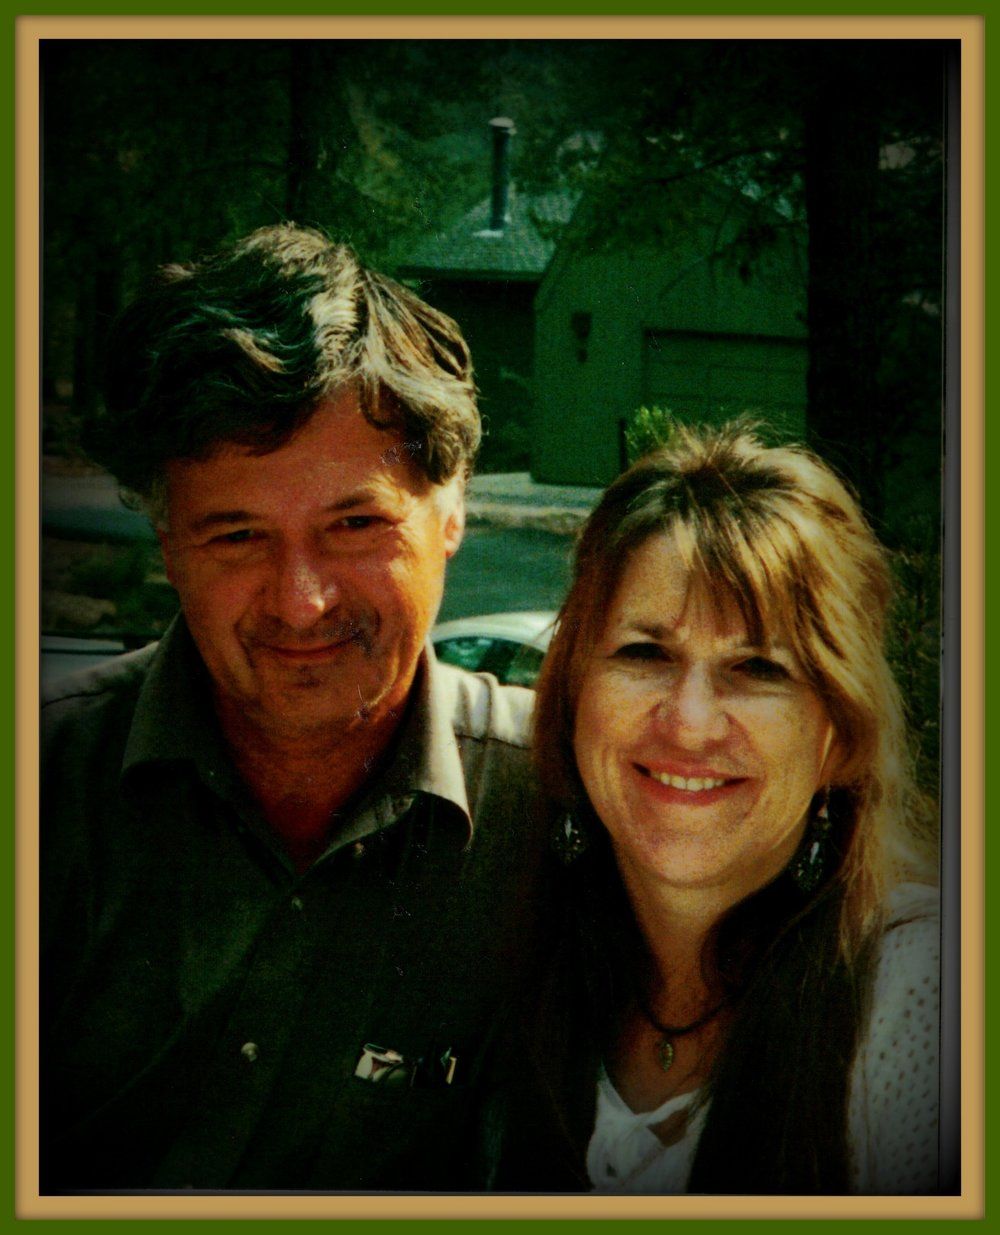 Bill and Amalie Holly, happily married for 25 years